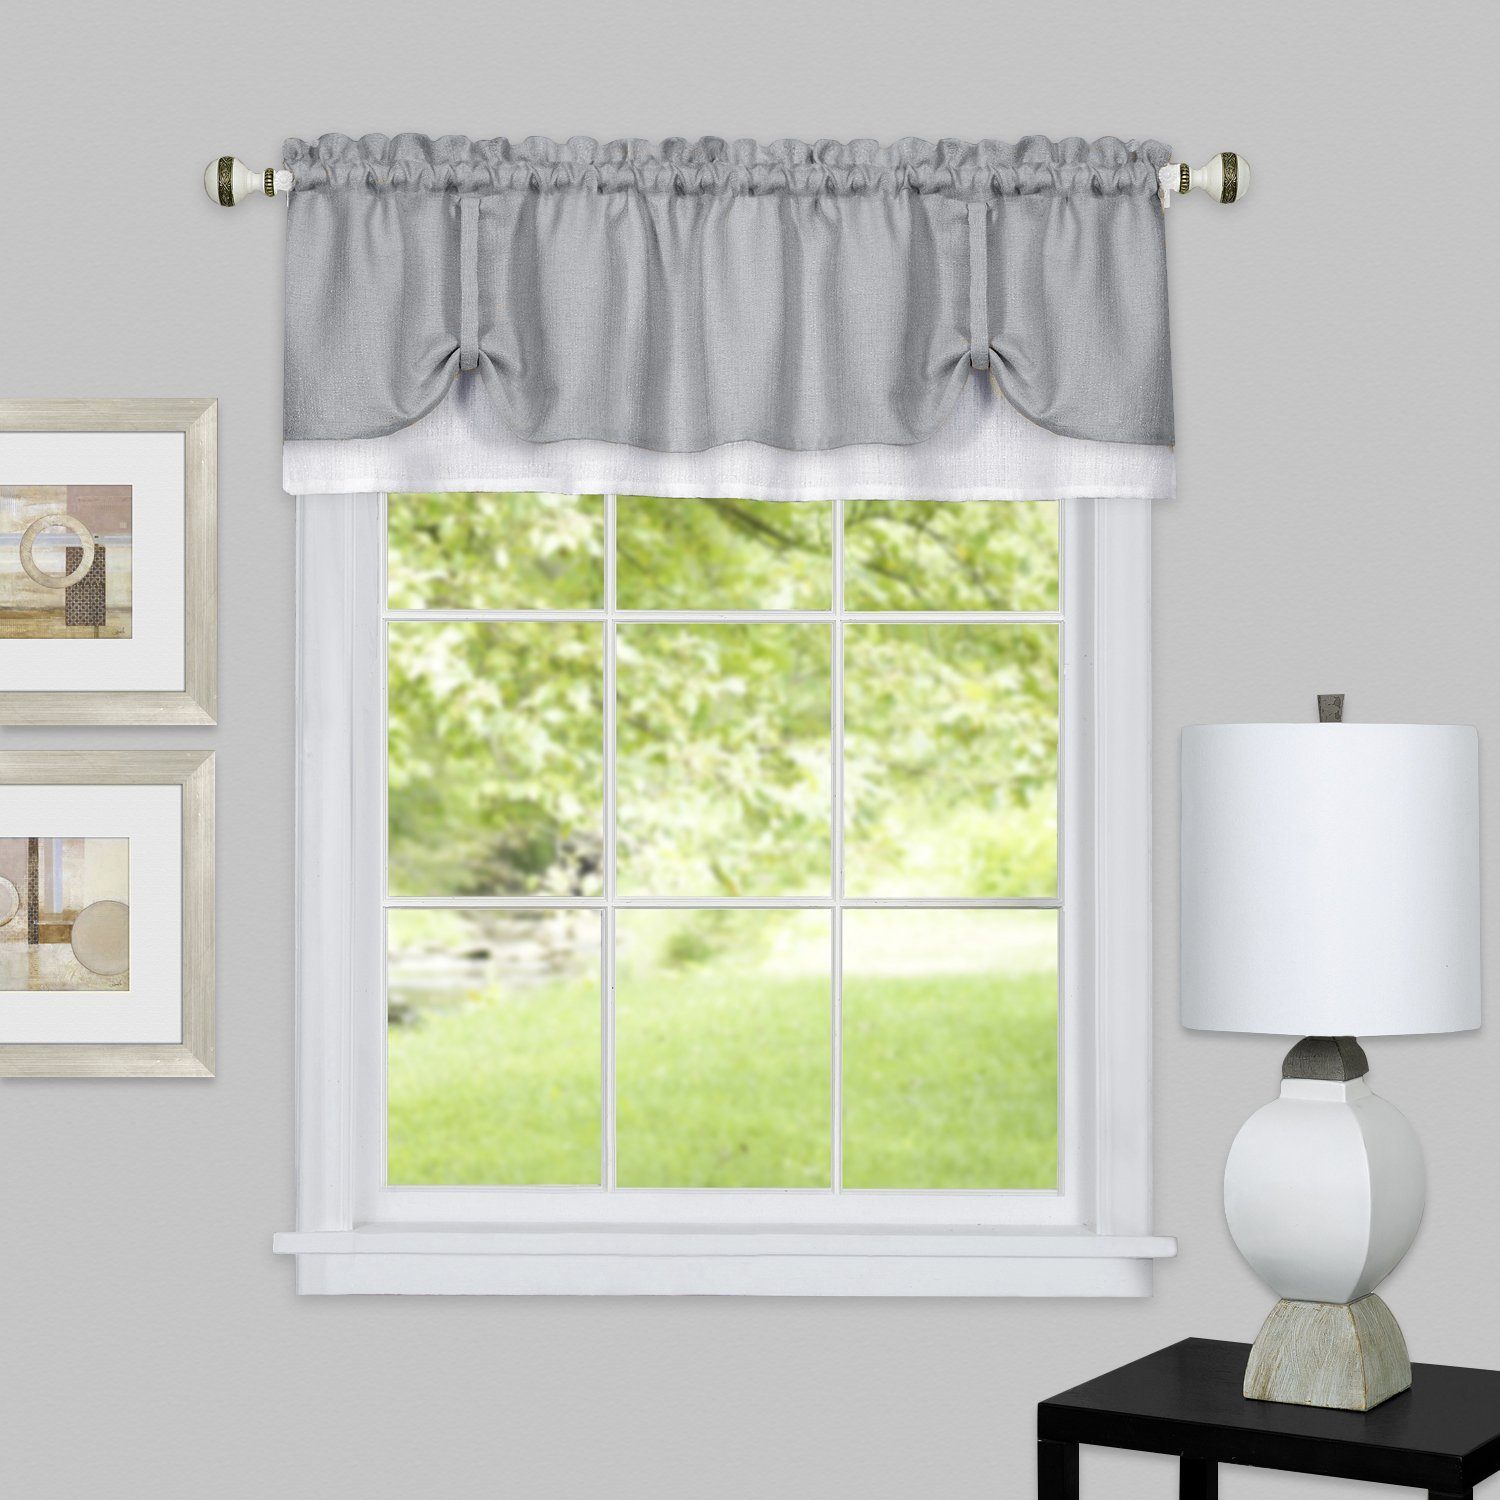 solid window curtain double layer tier pair valance set home furniture diy curtains drapes redhot cl